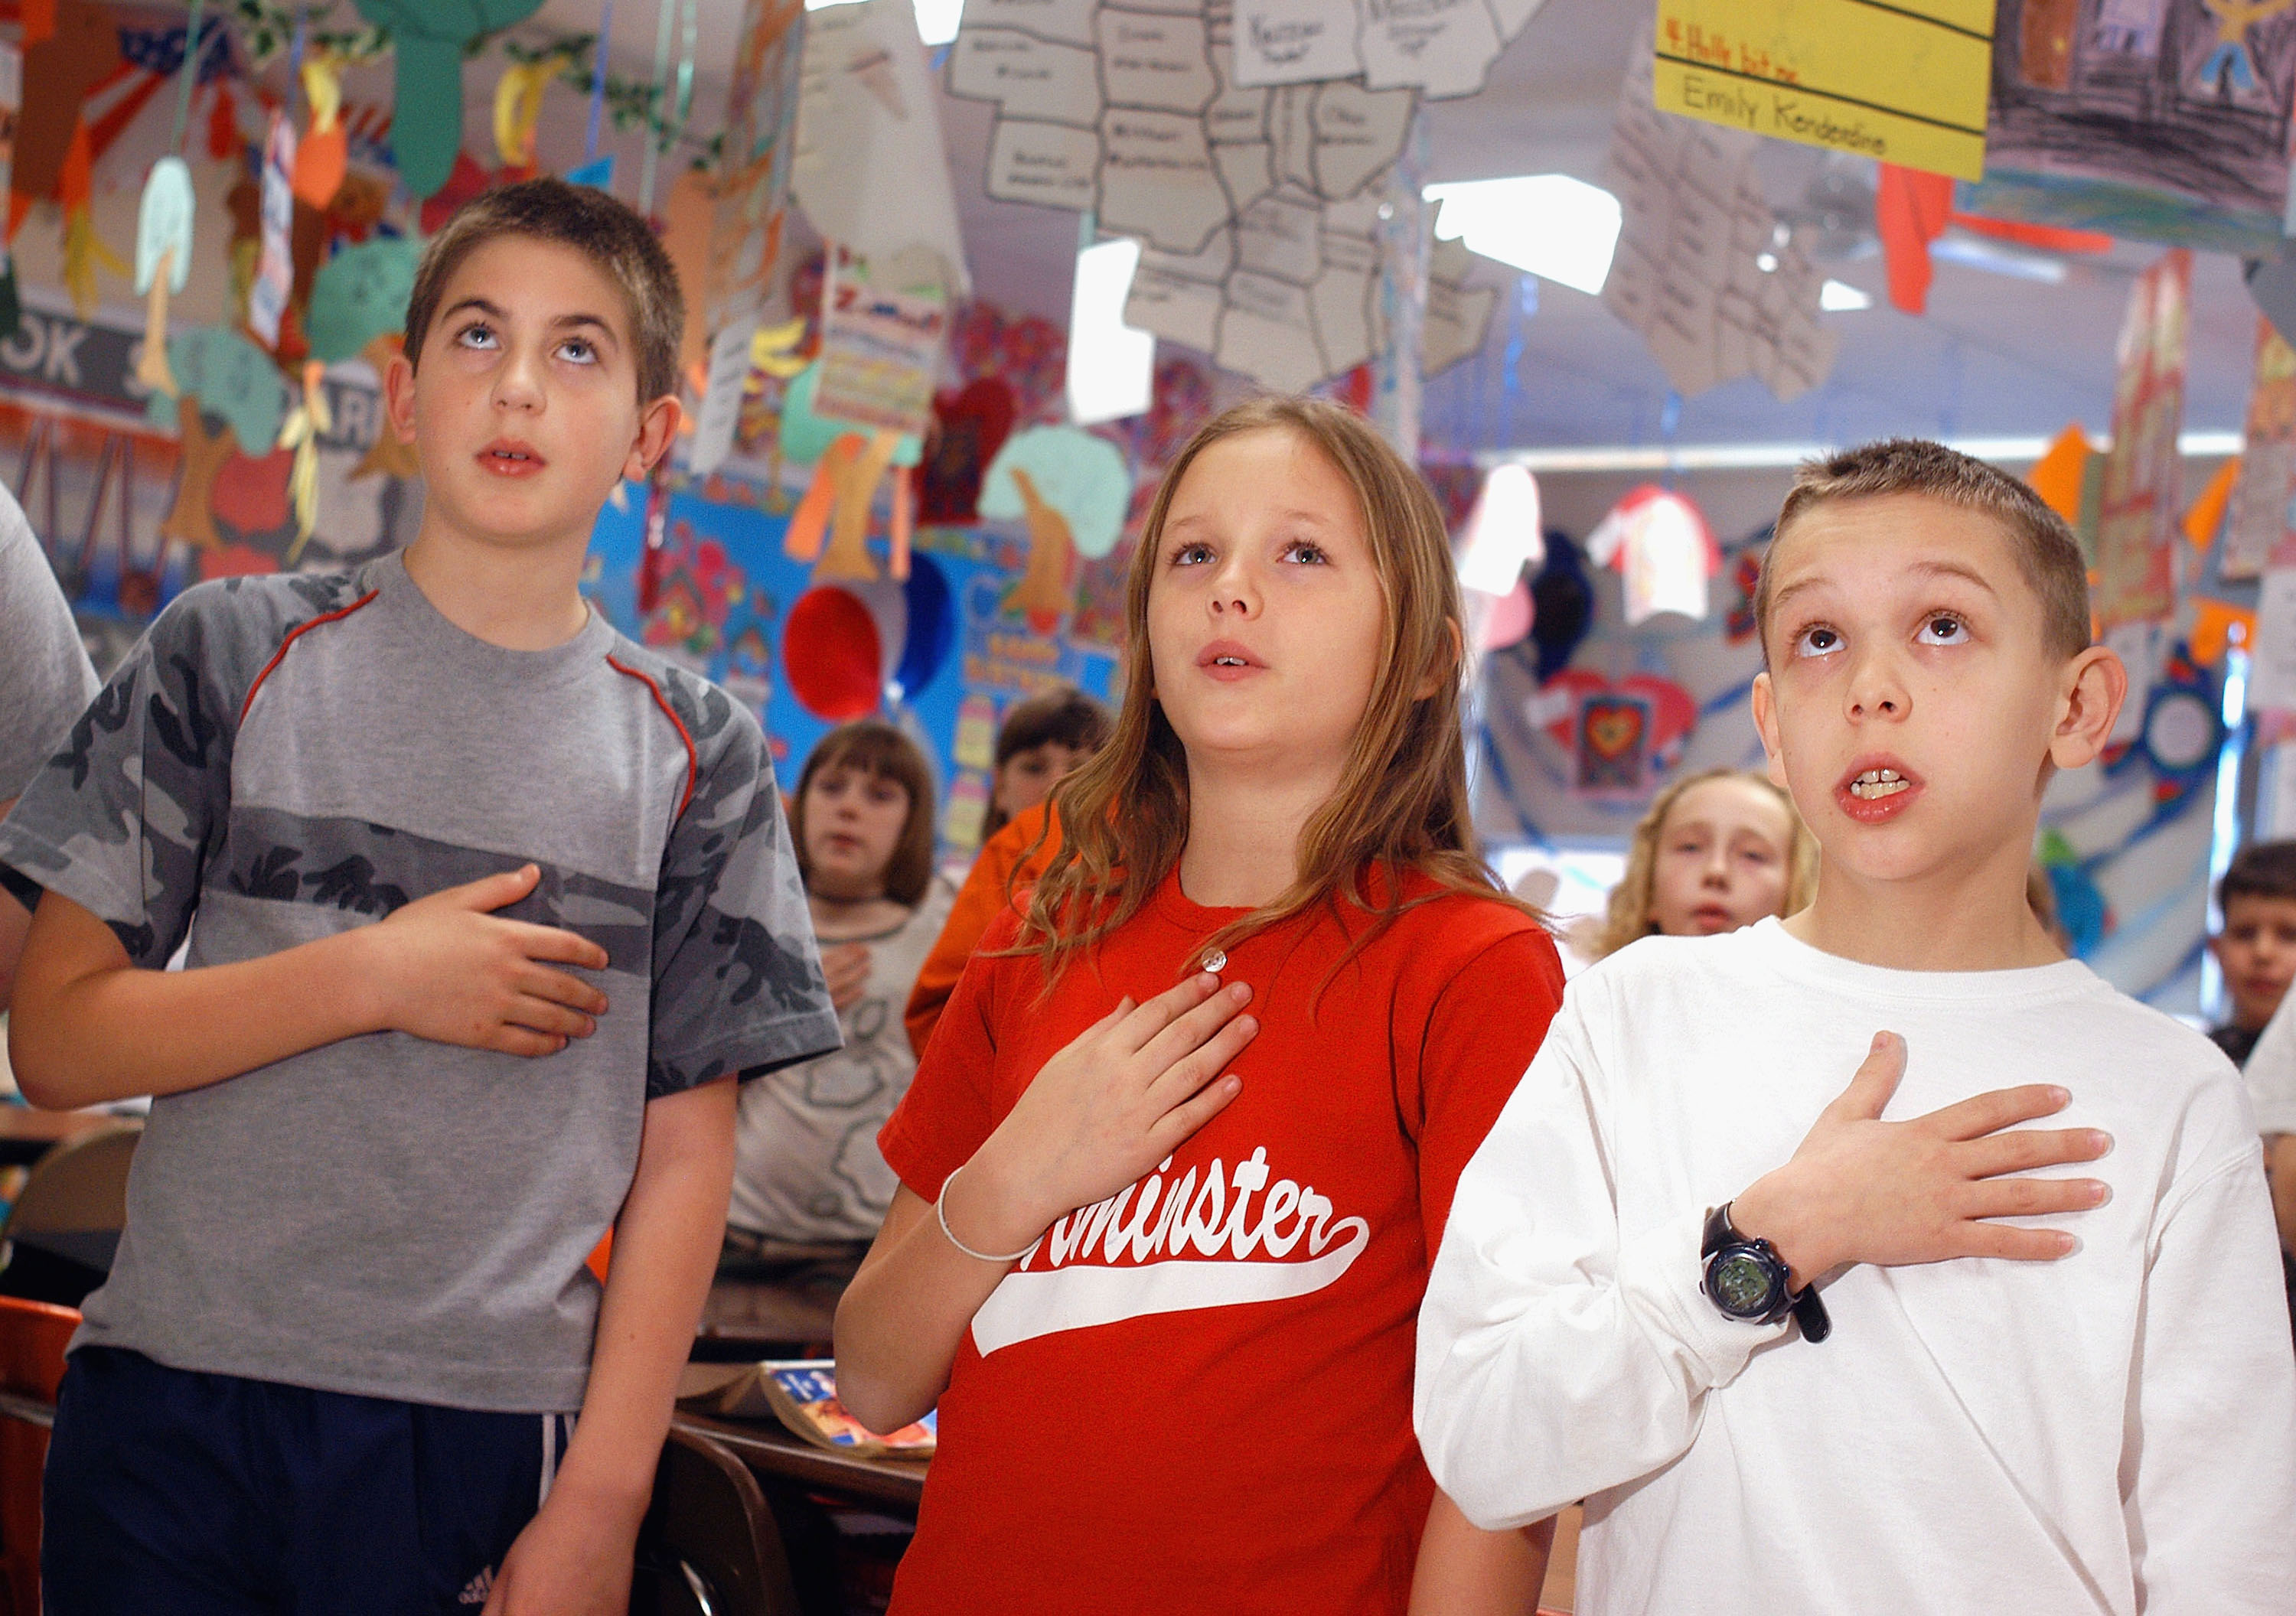 (L-R) Kevin Flynn, Brooke Zumwalt and Joseph Miller, fourth grade students at Longstreth Elementary School pledge allegiance to the flag March 24, 2004 in Warminster, Pennsylvania. (Photo by William Thomas Cain/Getty Images)